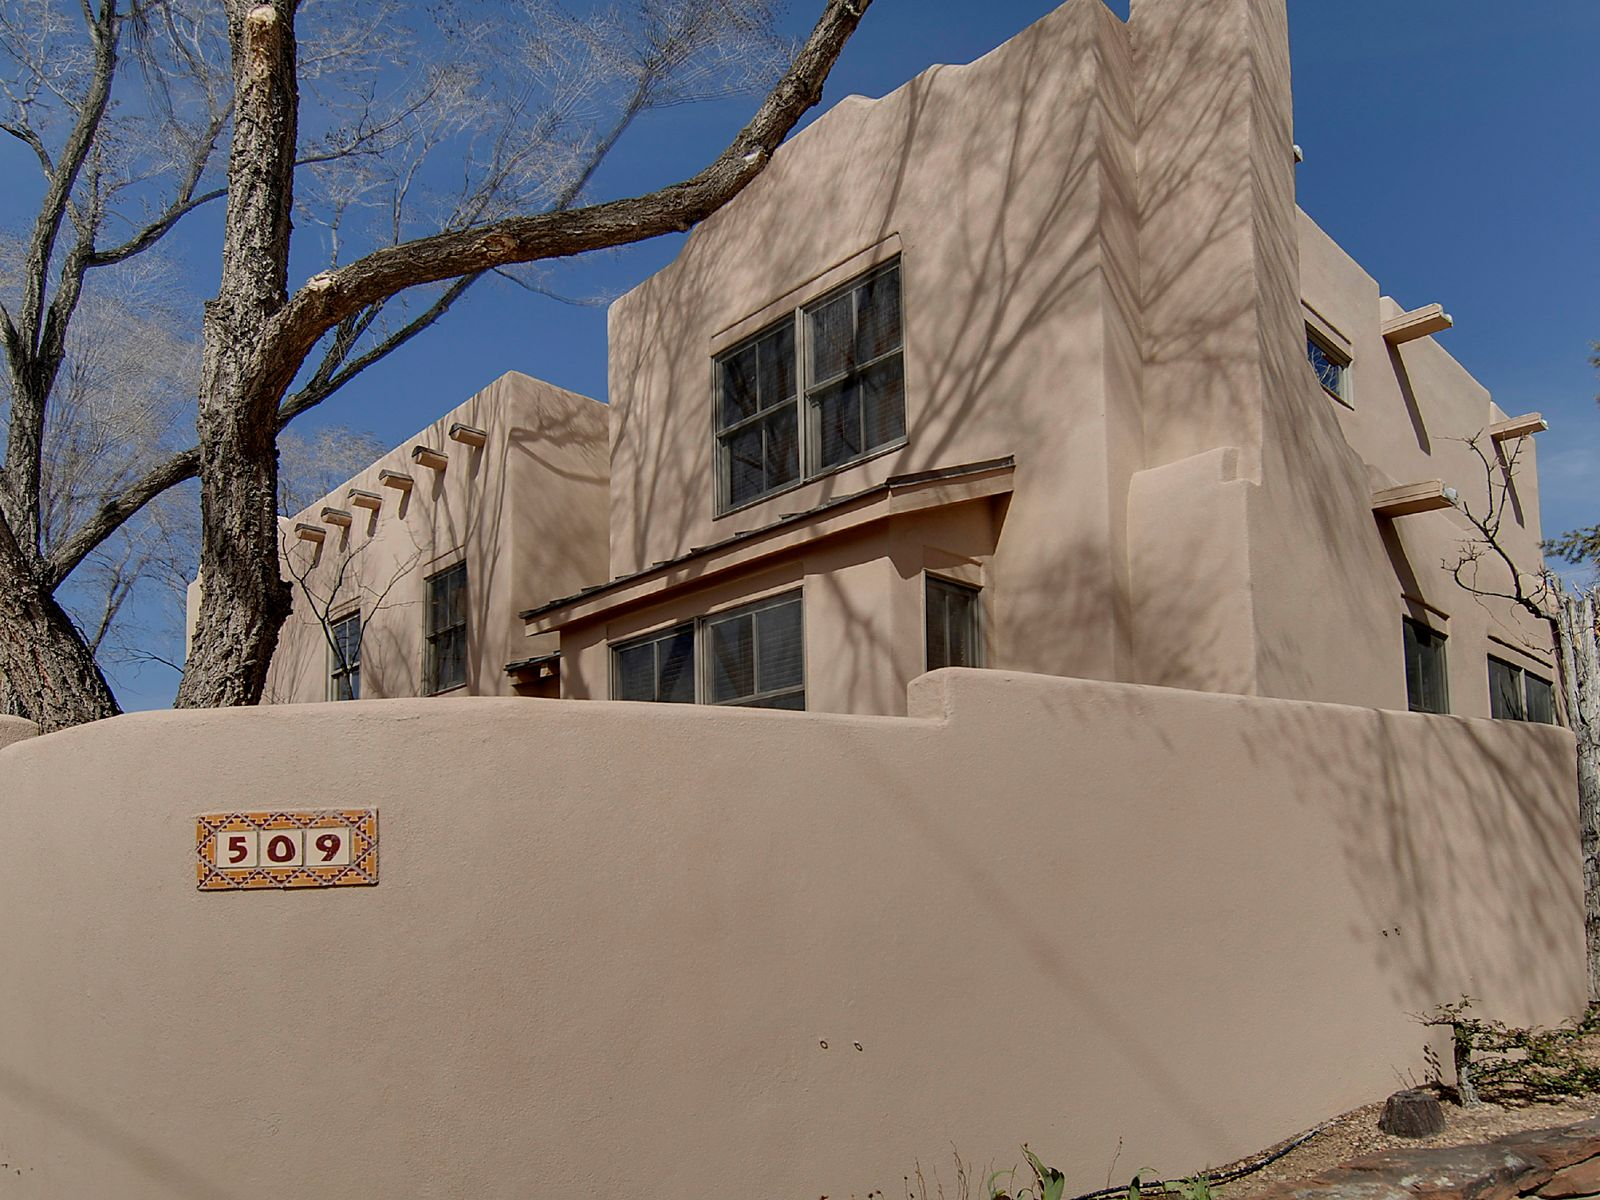 509 Rio Grande #A, Santa Fe NM Condominium - Santa Fe Real Estate